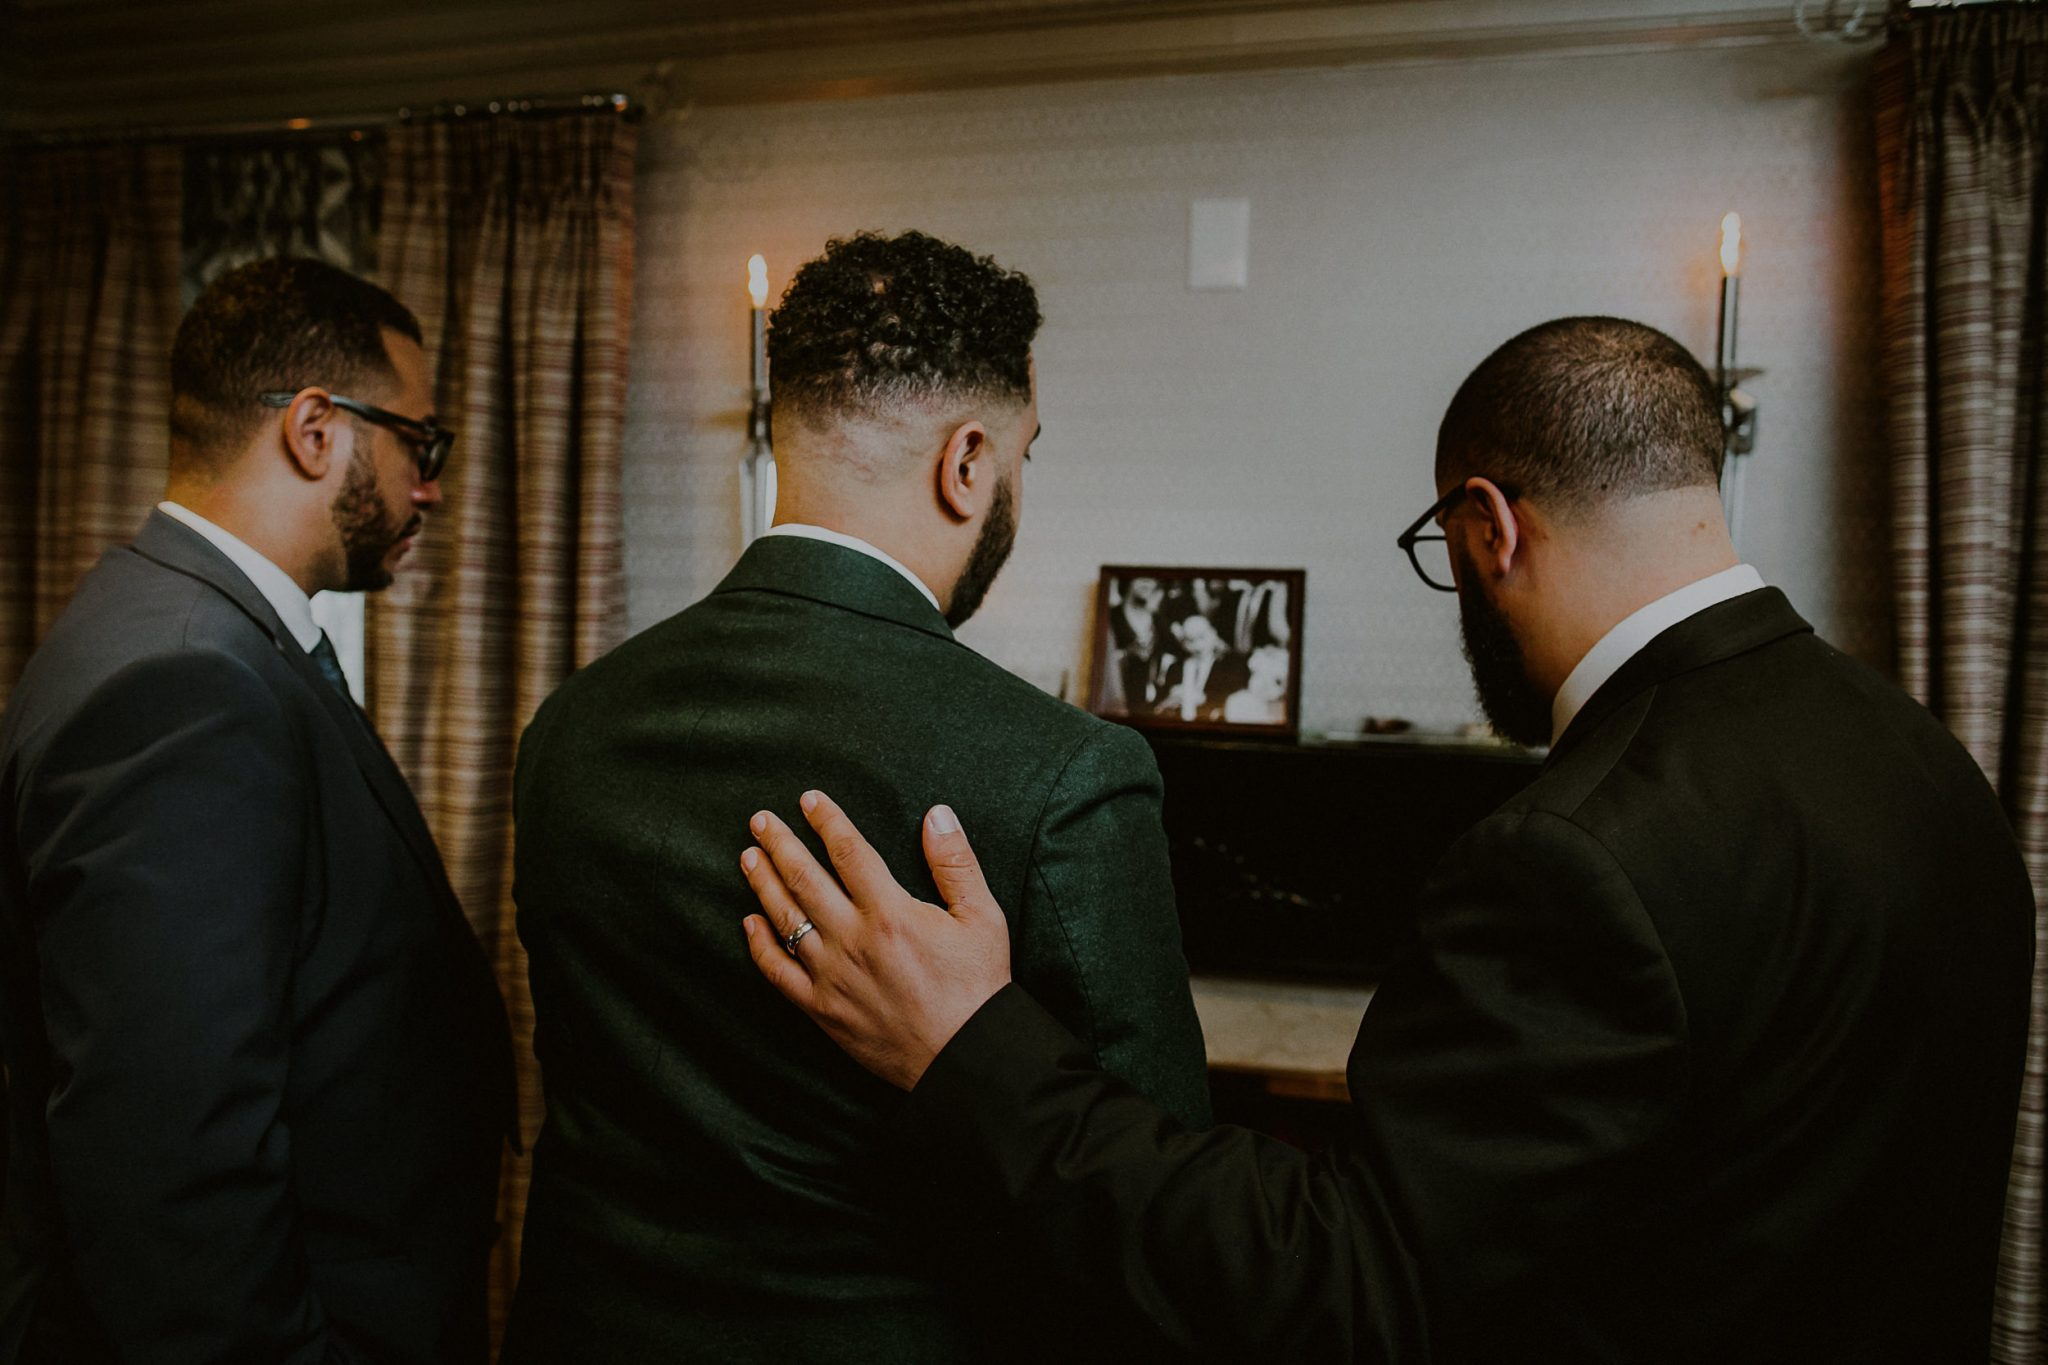 emotional moment between groom and brothers